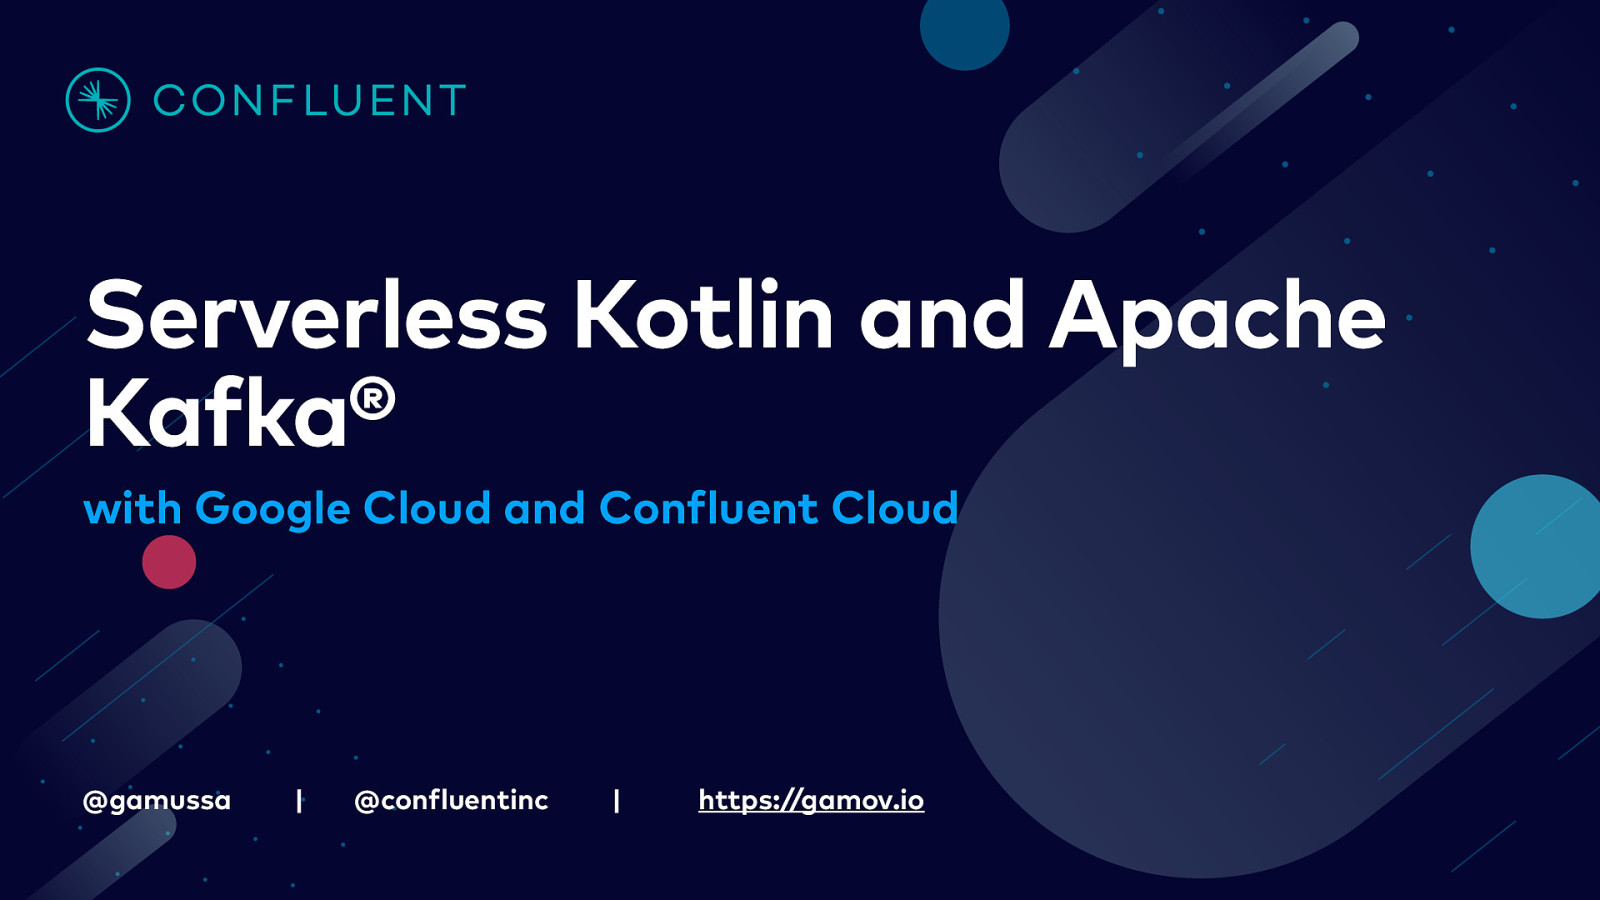 Serverless Kotlin and Apache Kafka® with Google Cloud and Confluent Cloud